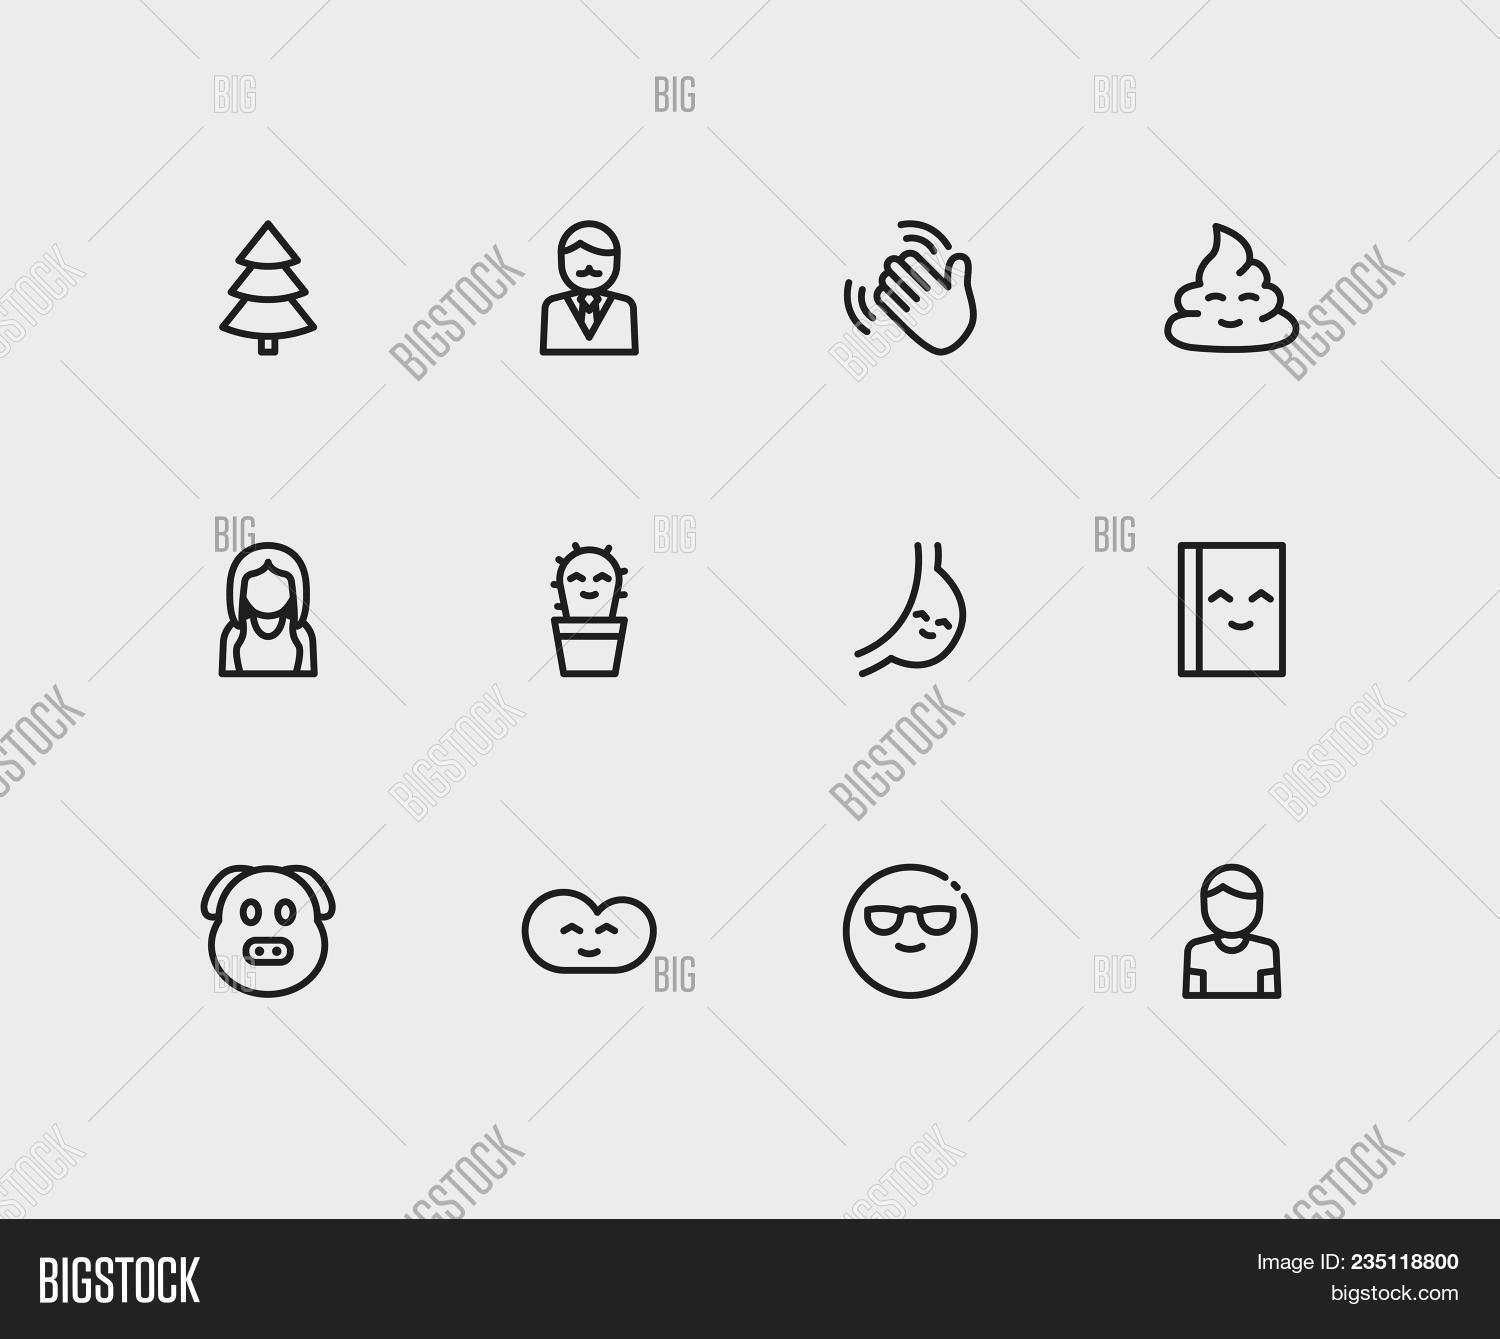 Emoji icons set cool emoji image photo bigstock emoji icons set of cool emoji business cartoon and cute cactus emoji sign symbols biocorpaavc Images